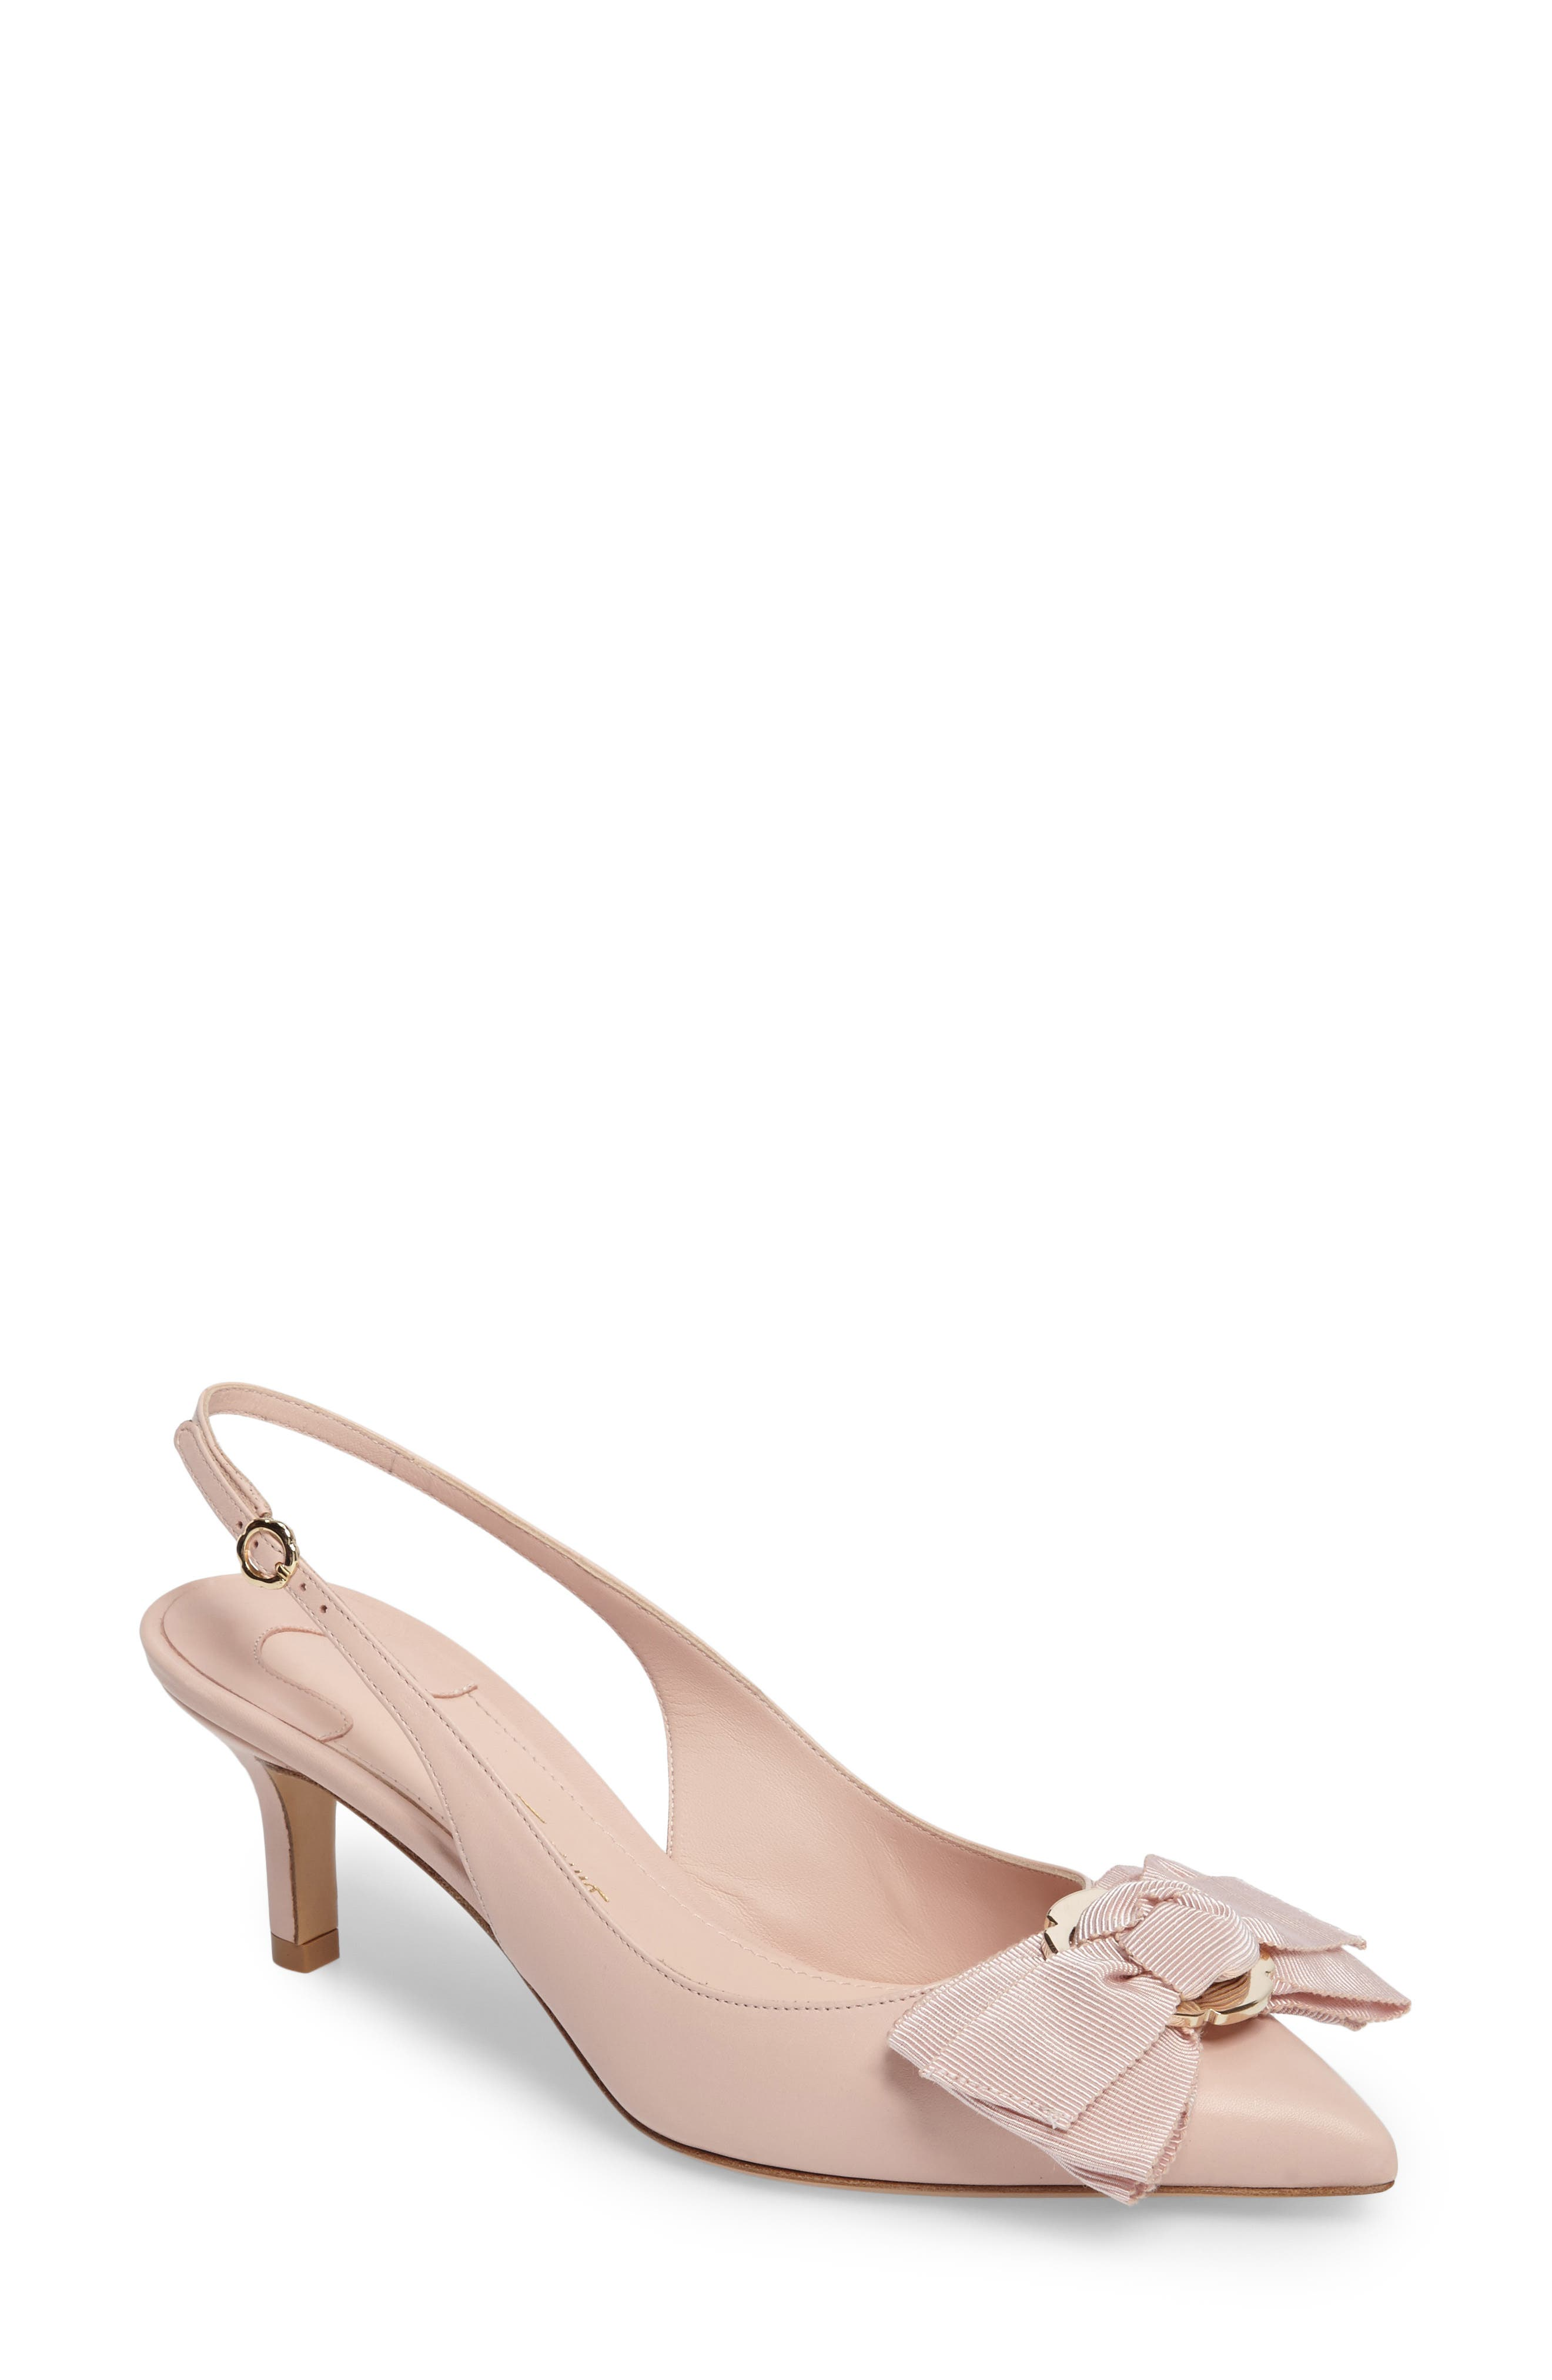 Laterina Slingback Pump,                             Main thumbnail 1, color,